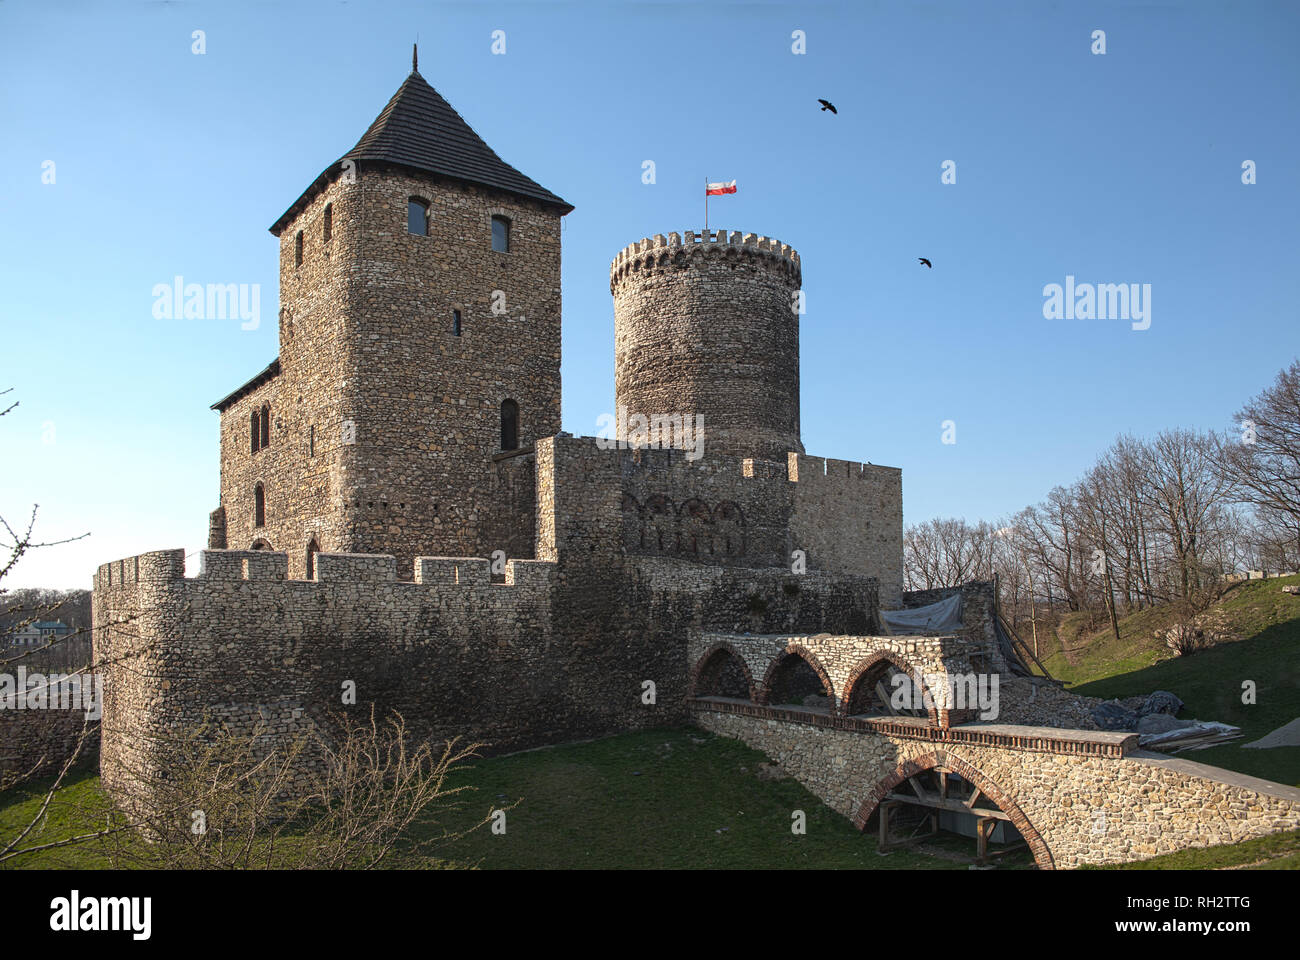 Polish castles, castle in Bedzin. Stock Photo